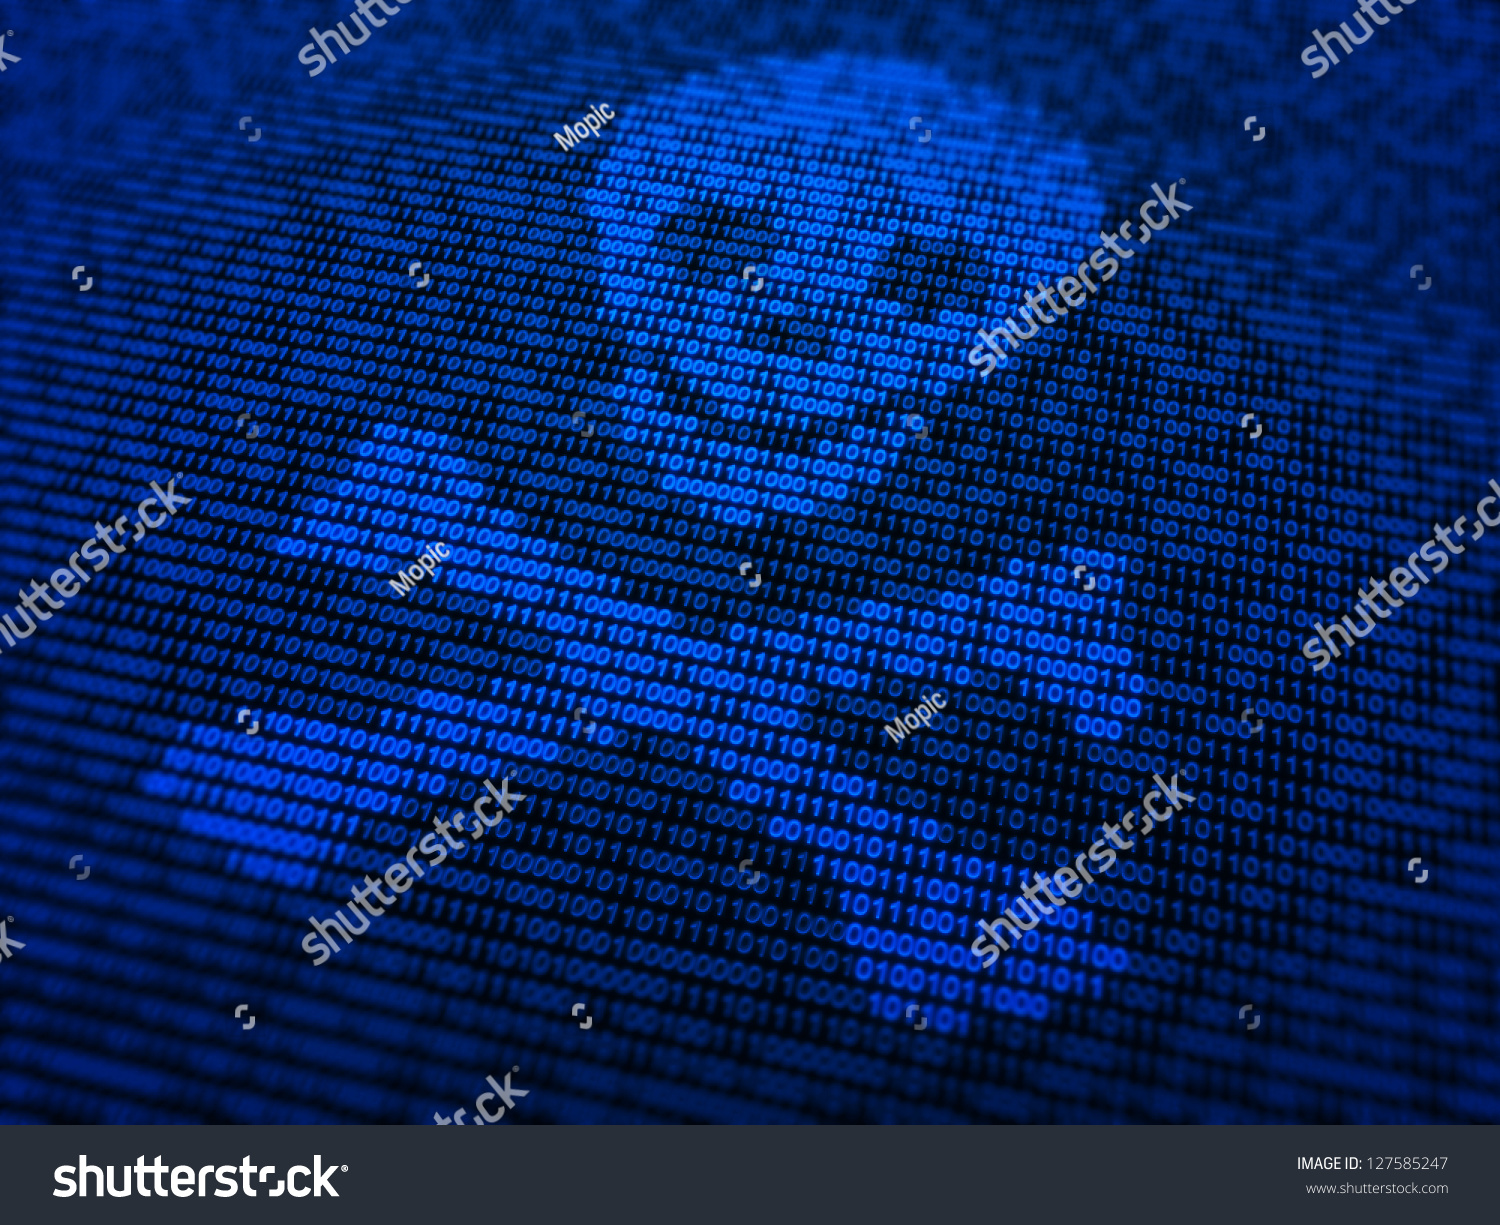 Or Photo Of Circuit Board Skinned Human Close Up And Binary Code Internet Security Malware Concept Illustration Skull Stock A Bones Symbol Made Out